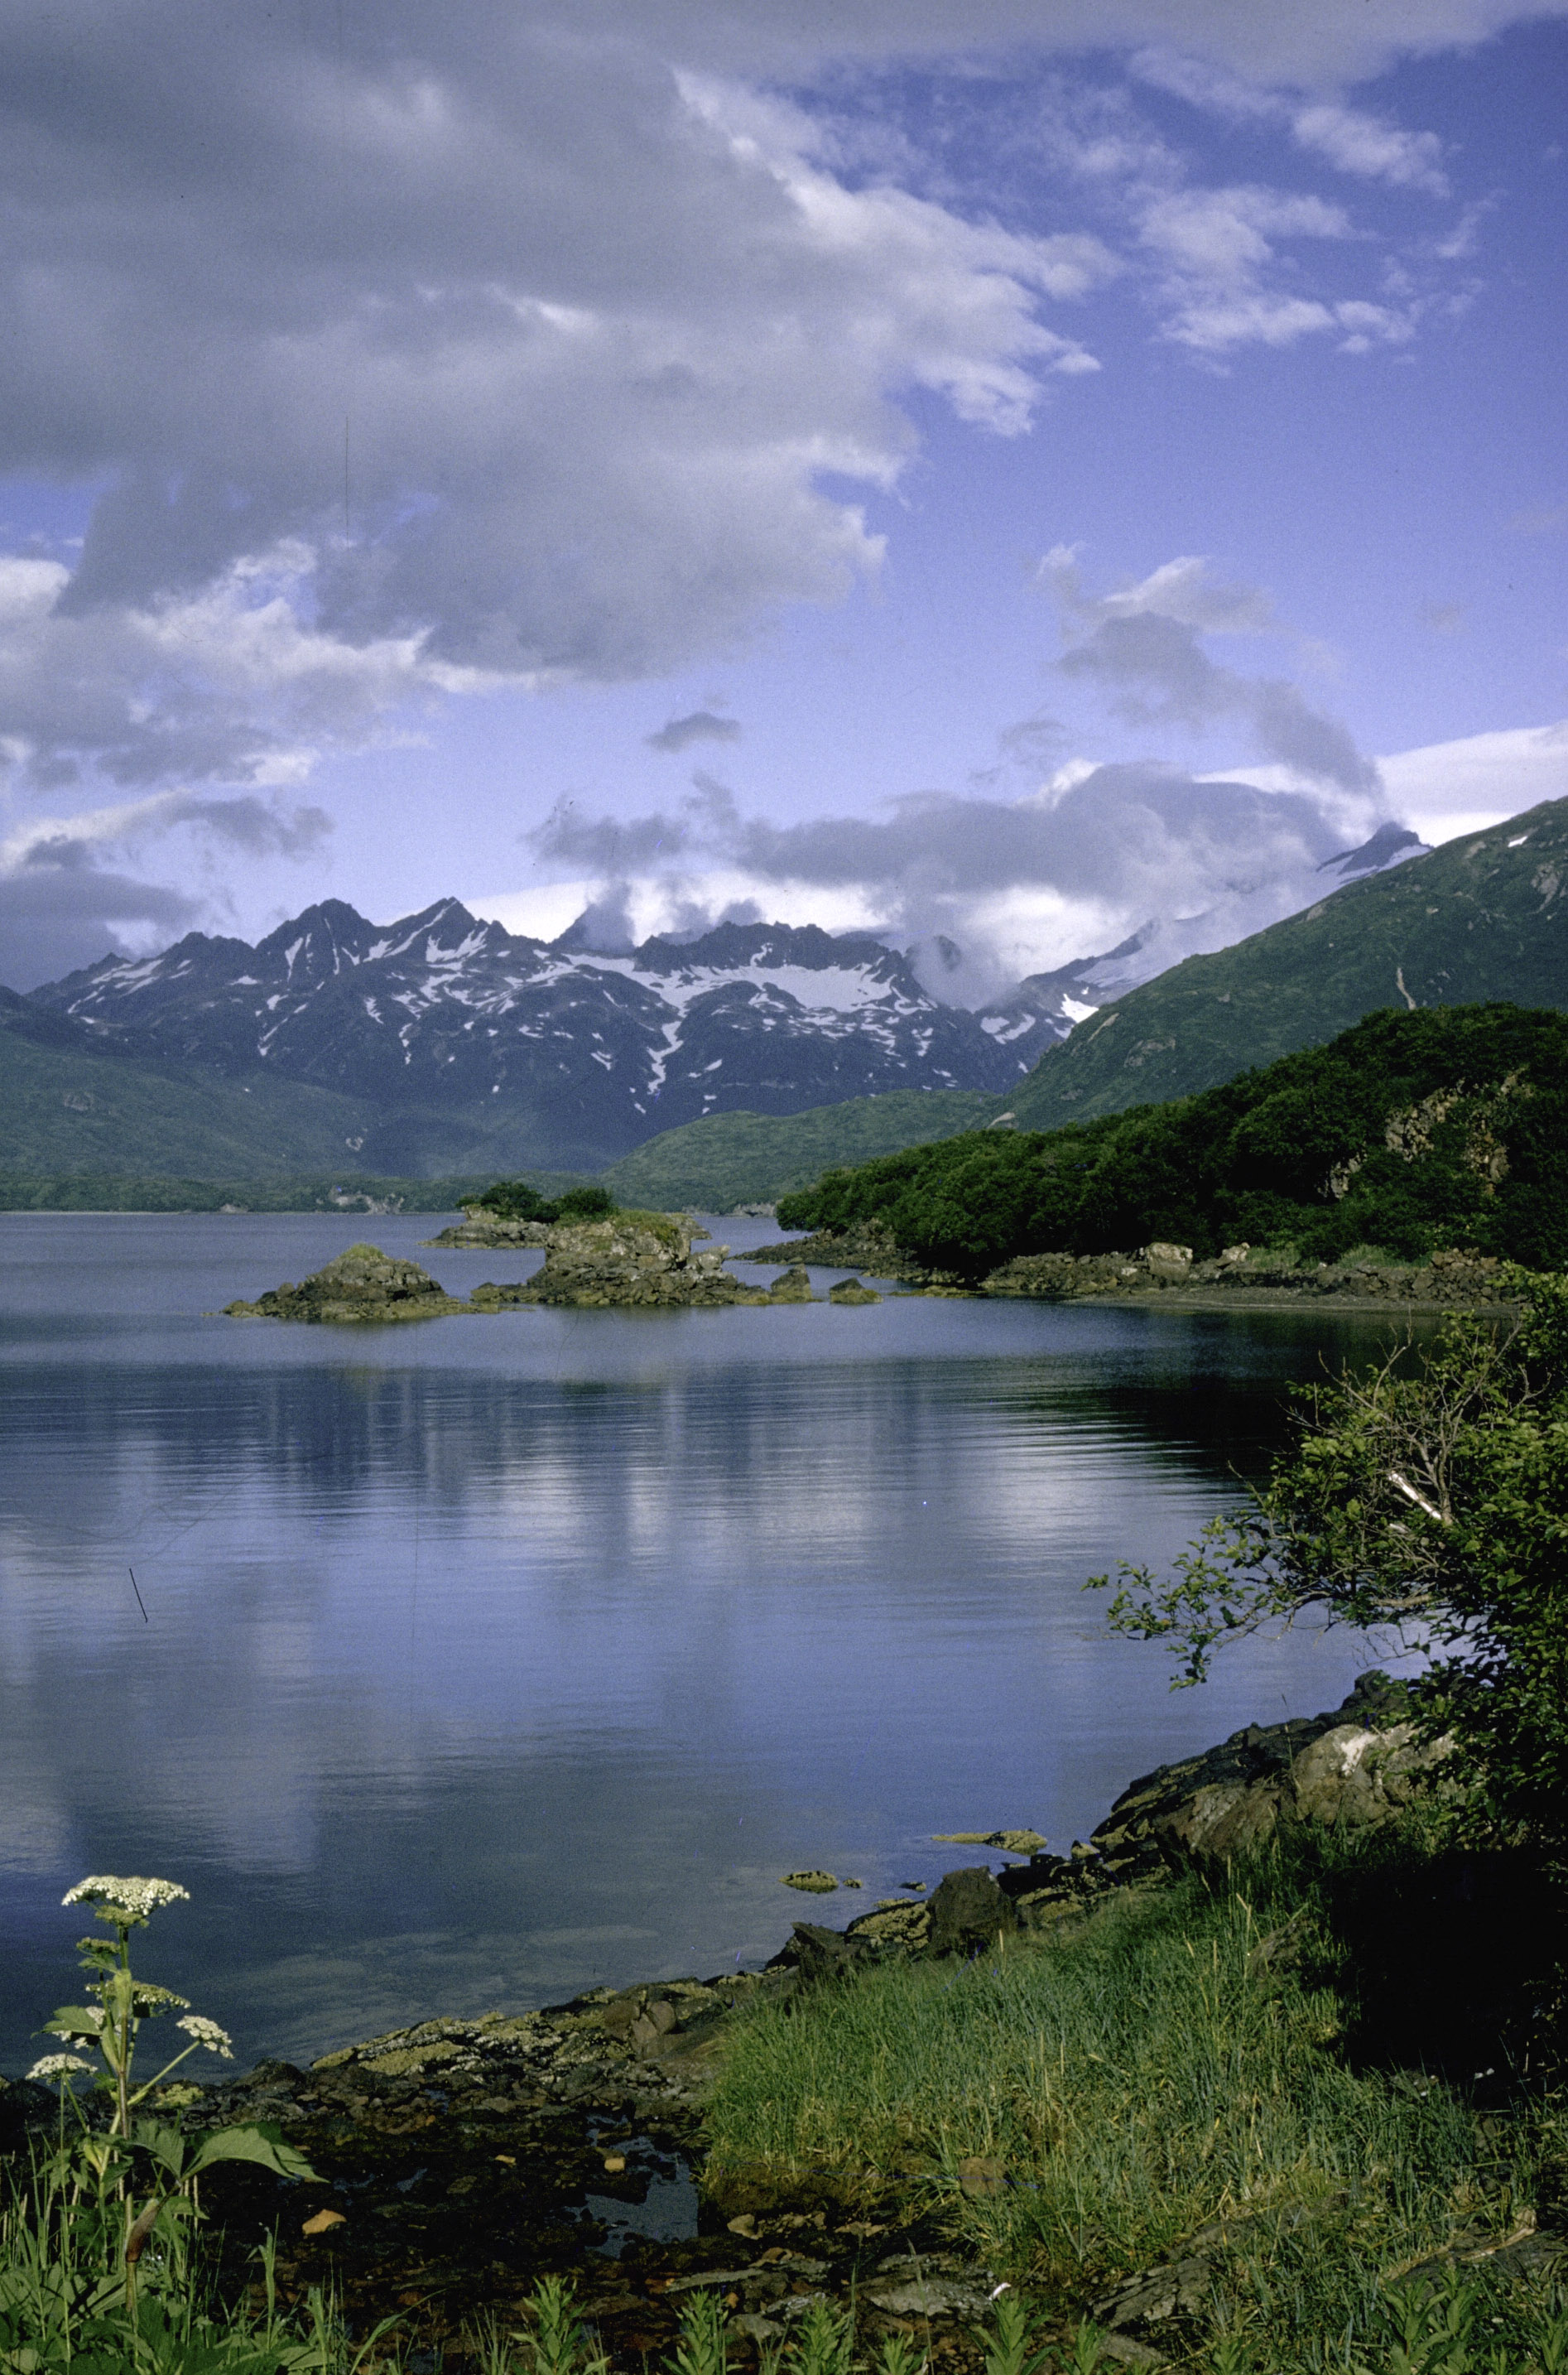 Free Stock Photo: Landscape Of The Mountains And Lake In Katmai National